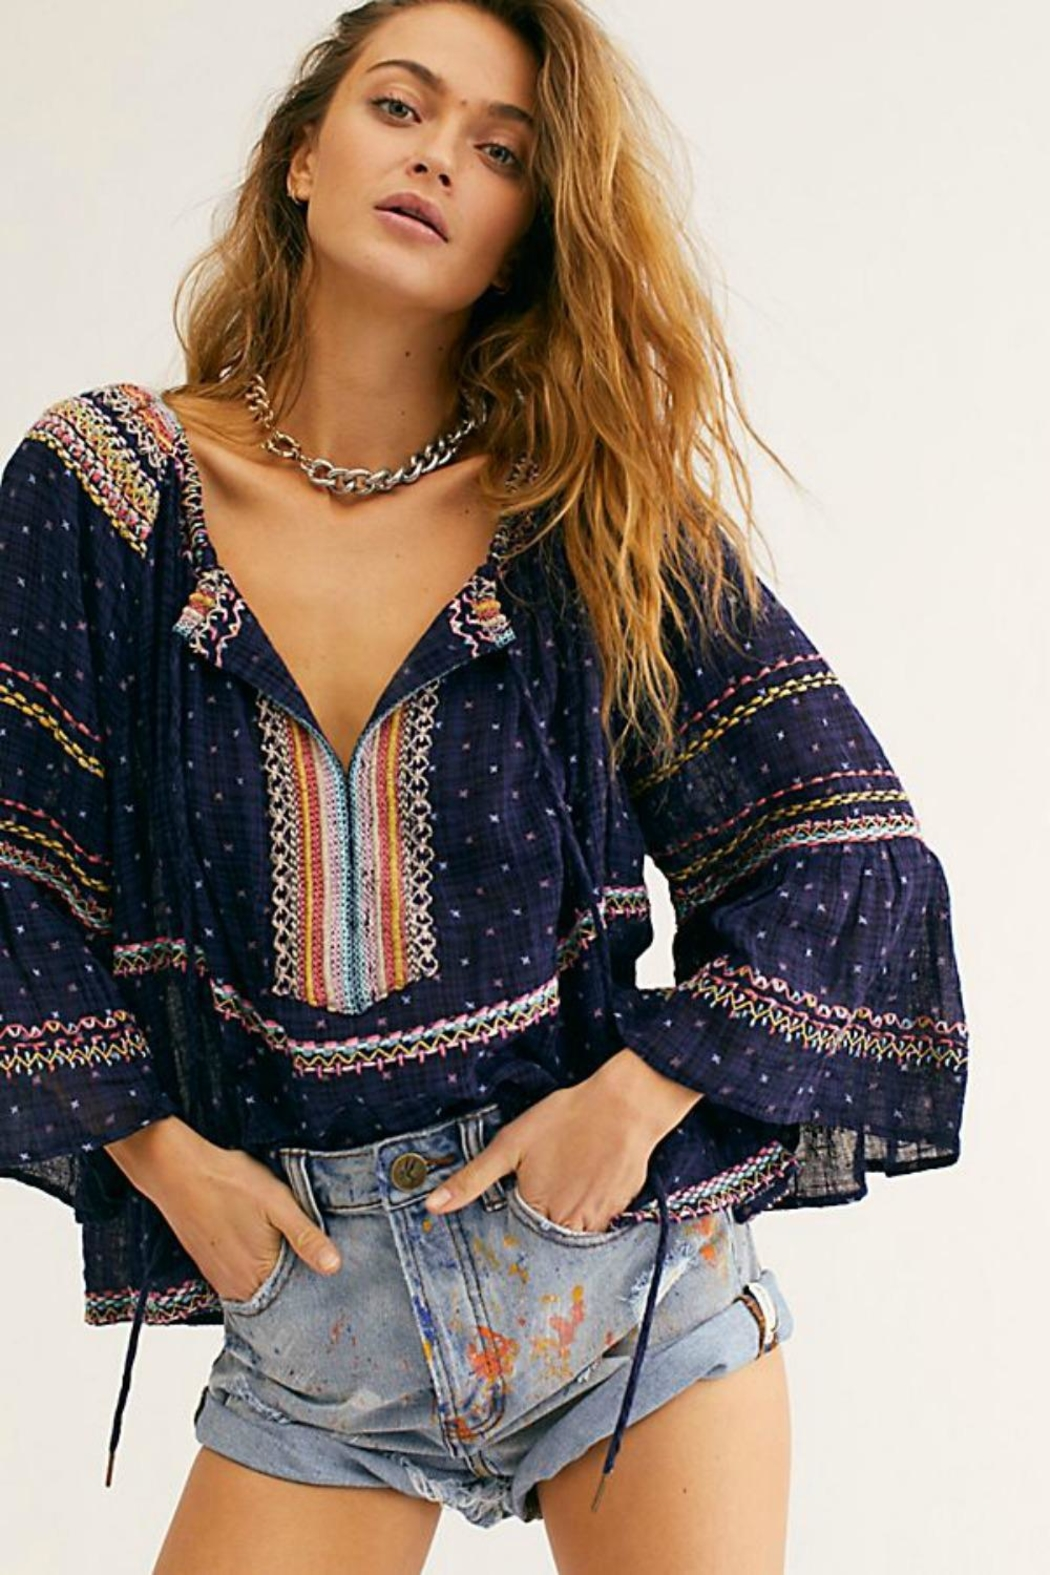 Free People Embroidered Navy Blouse - Main Image